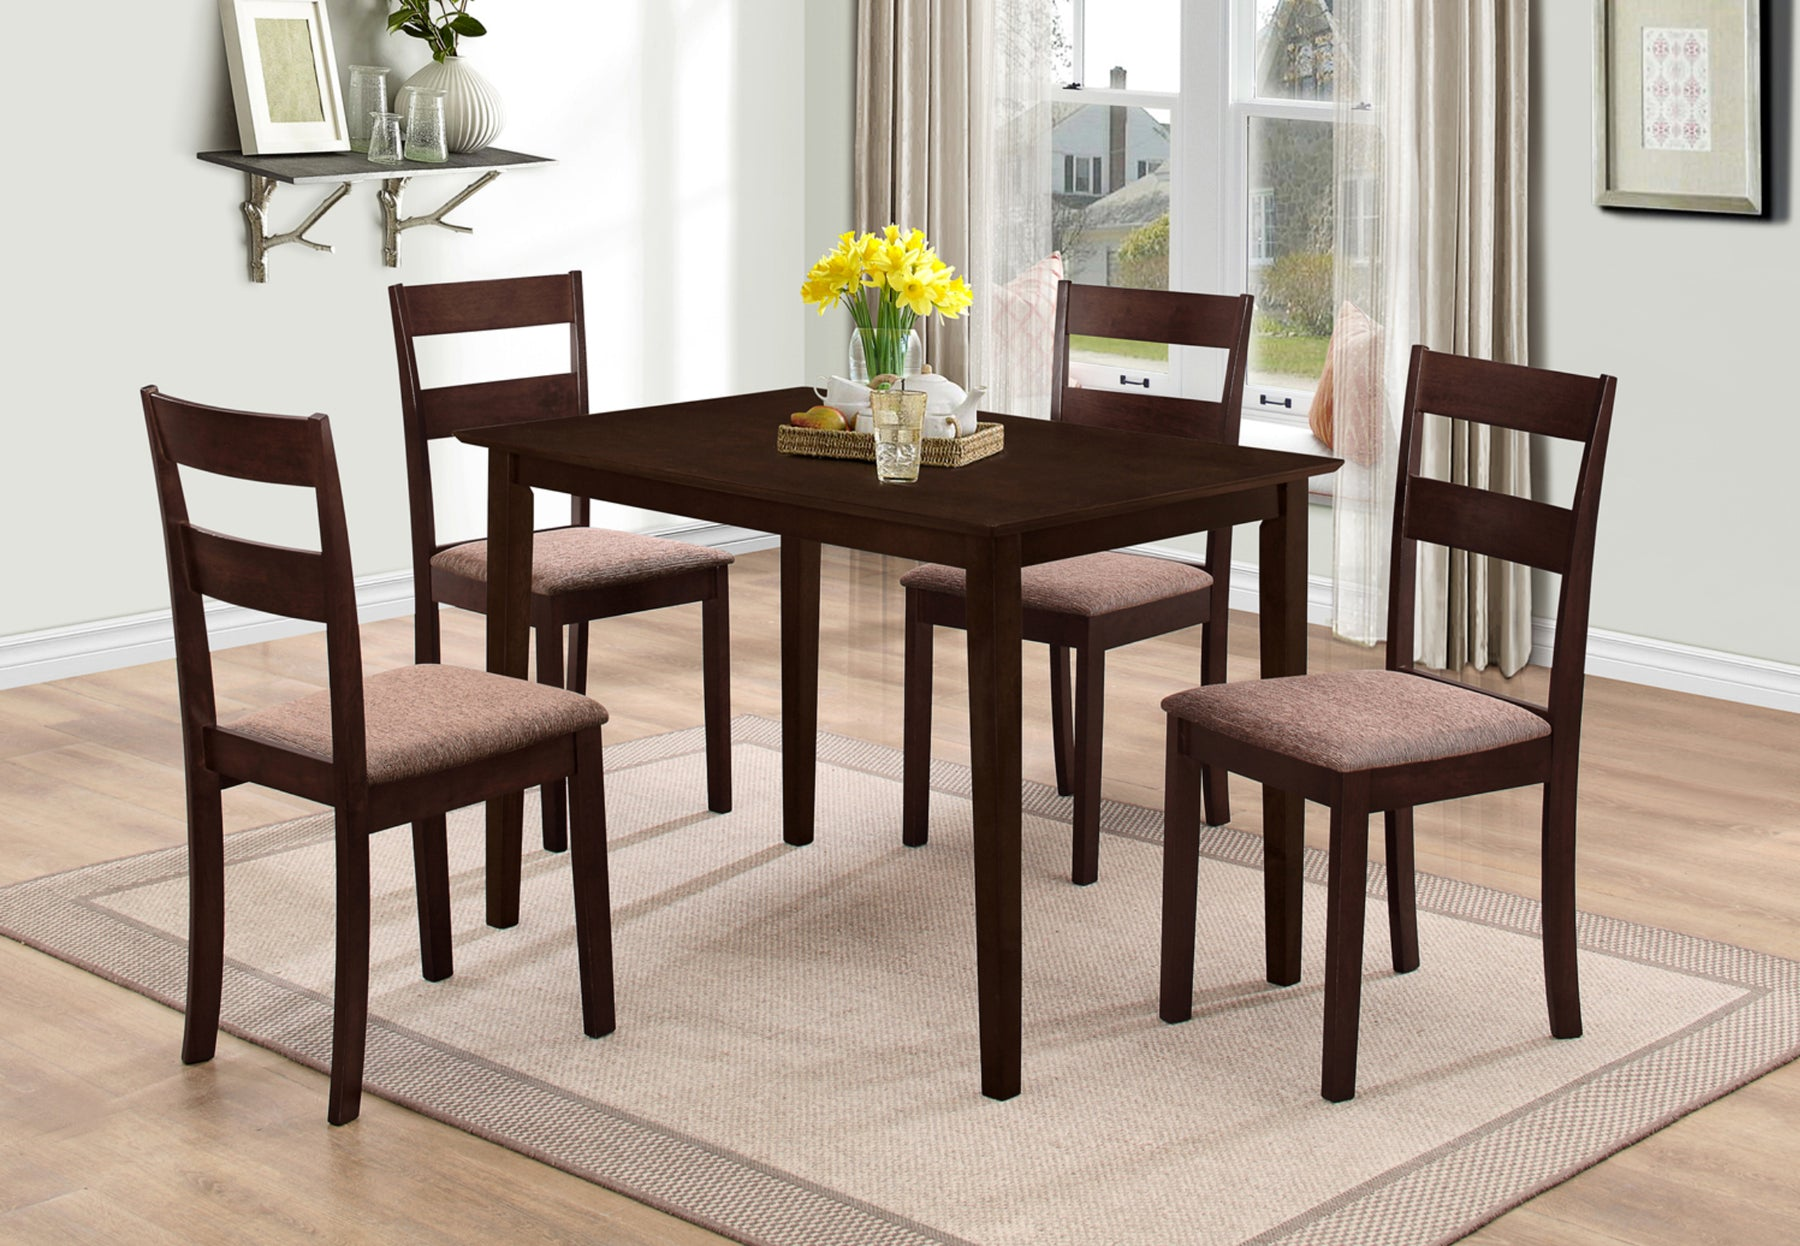 Fred 5 Pc Dinette